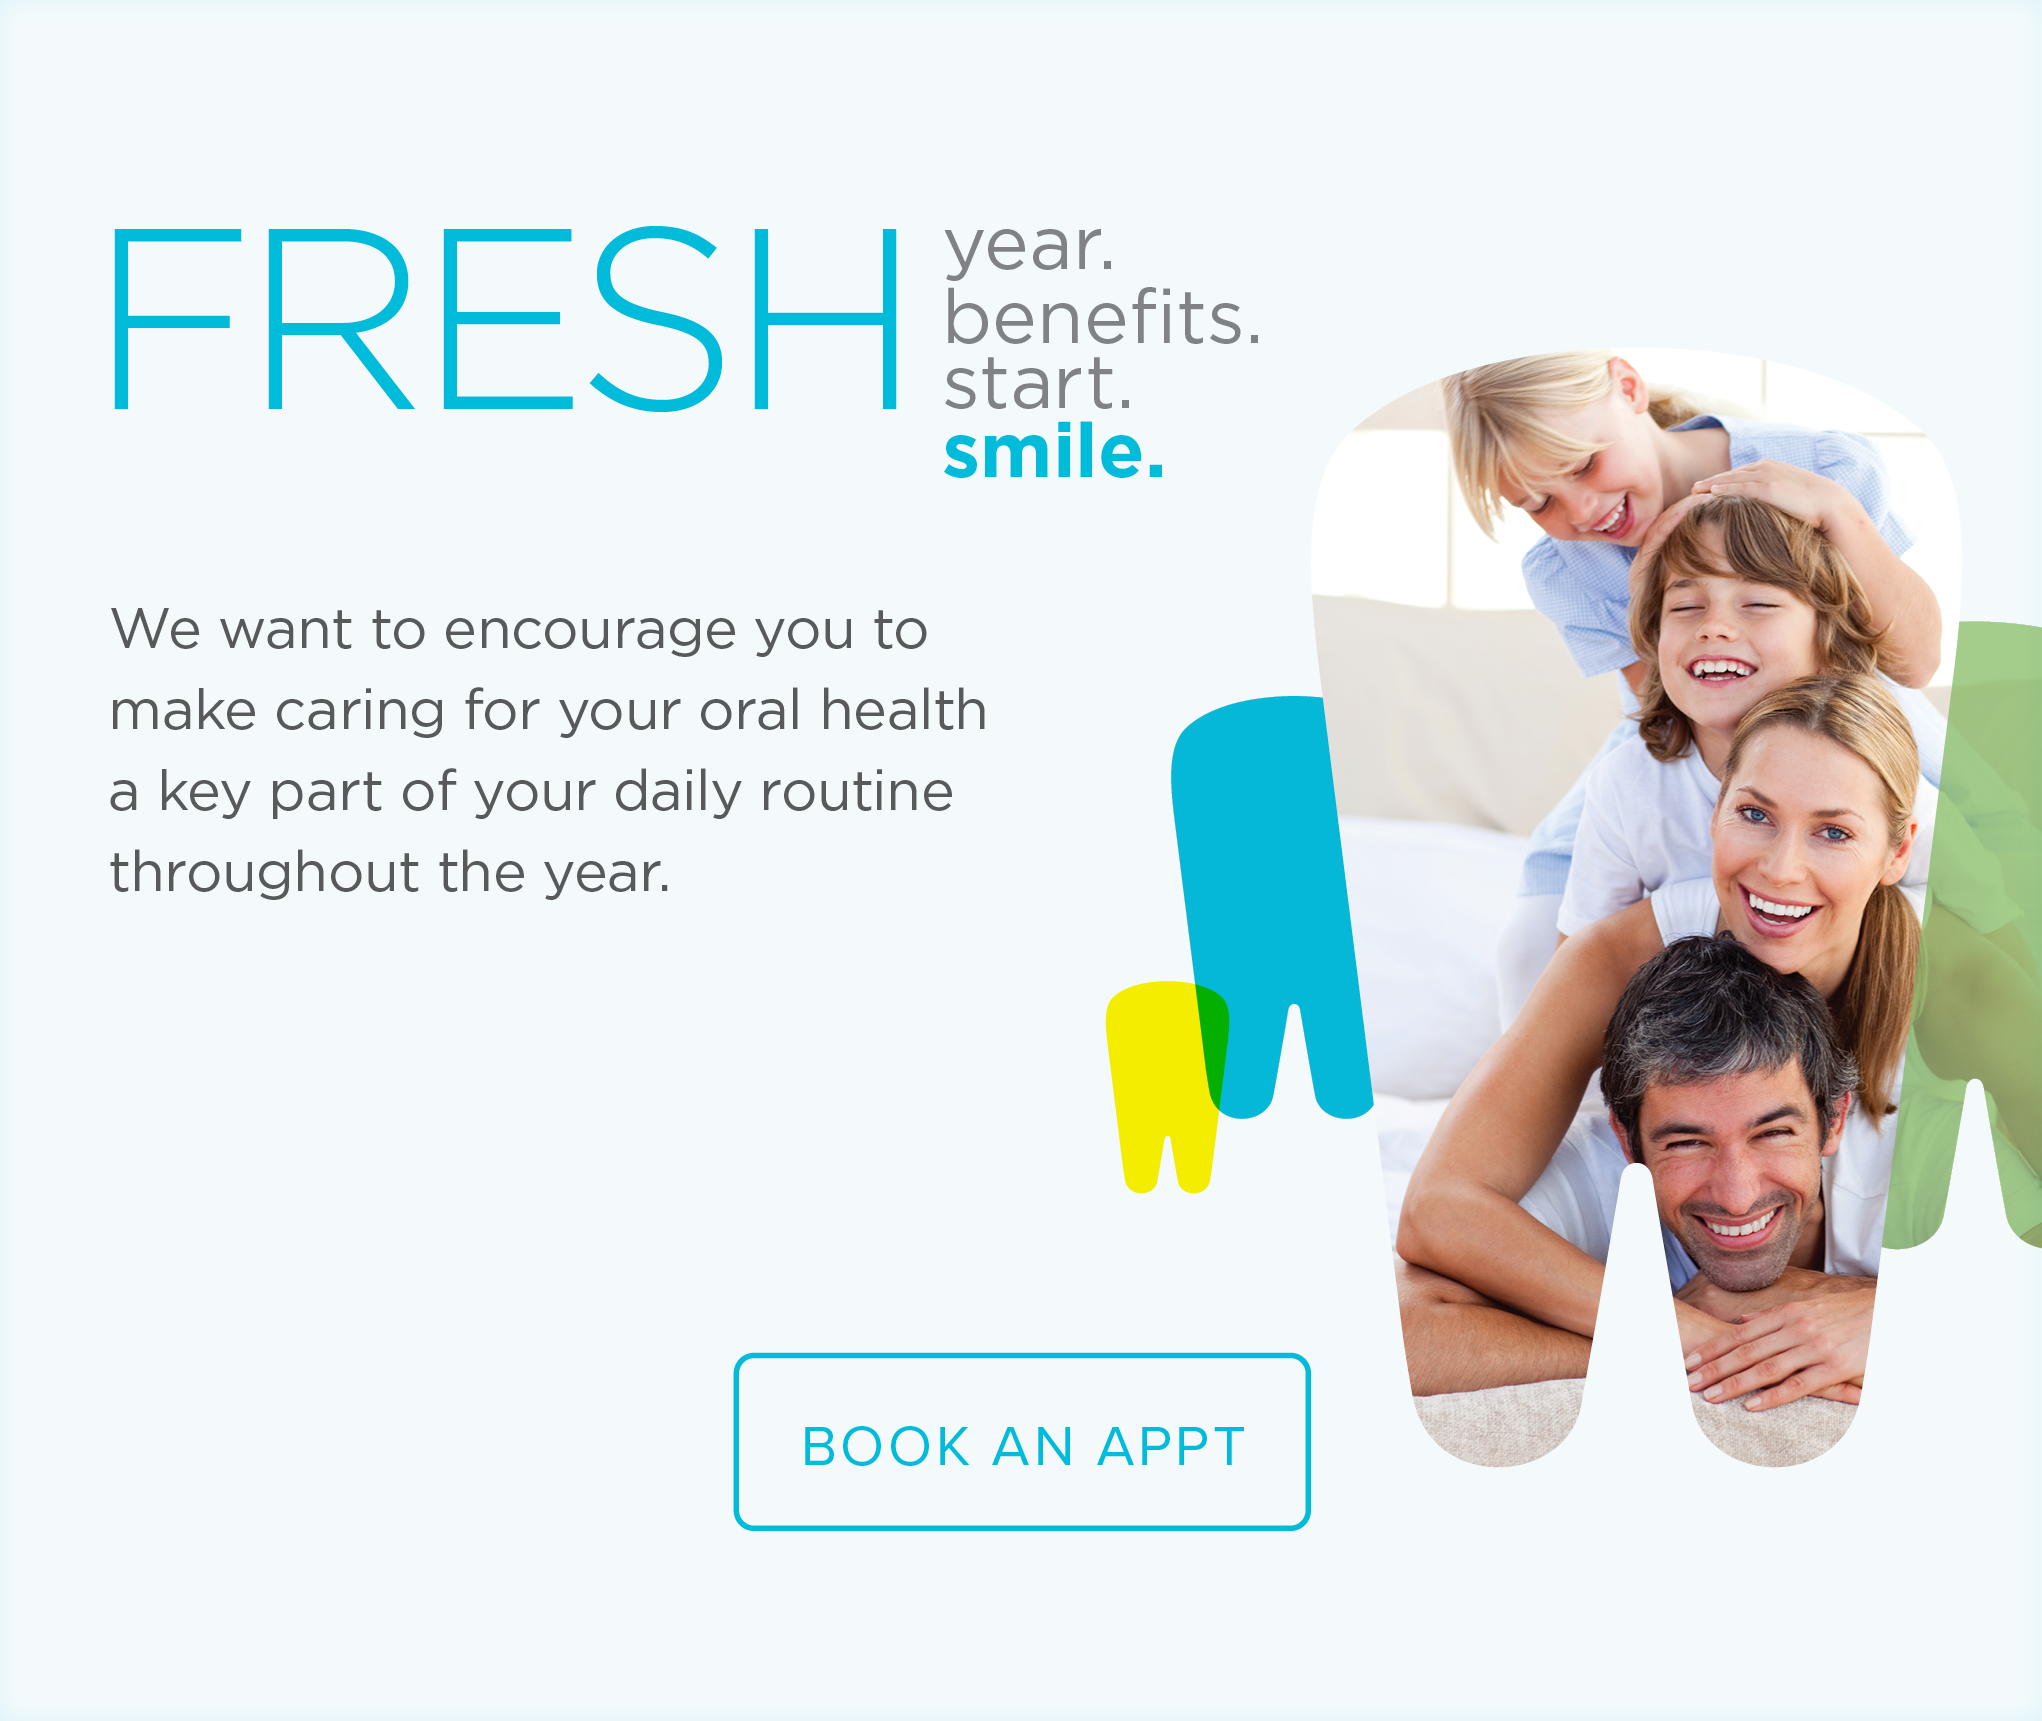 Culebra Smiles and Orthodontics - Make the Most of Your Benefits